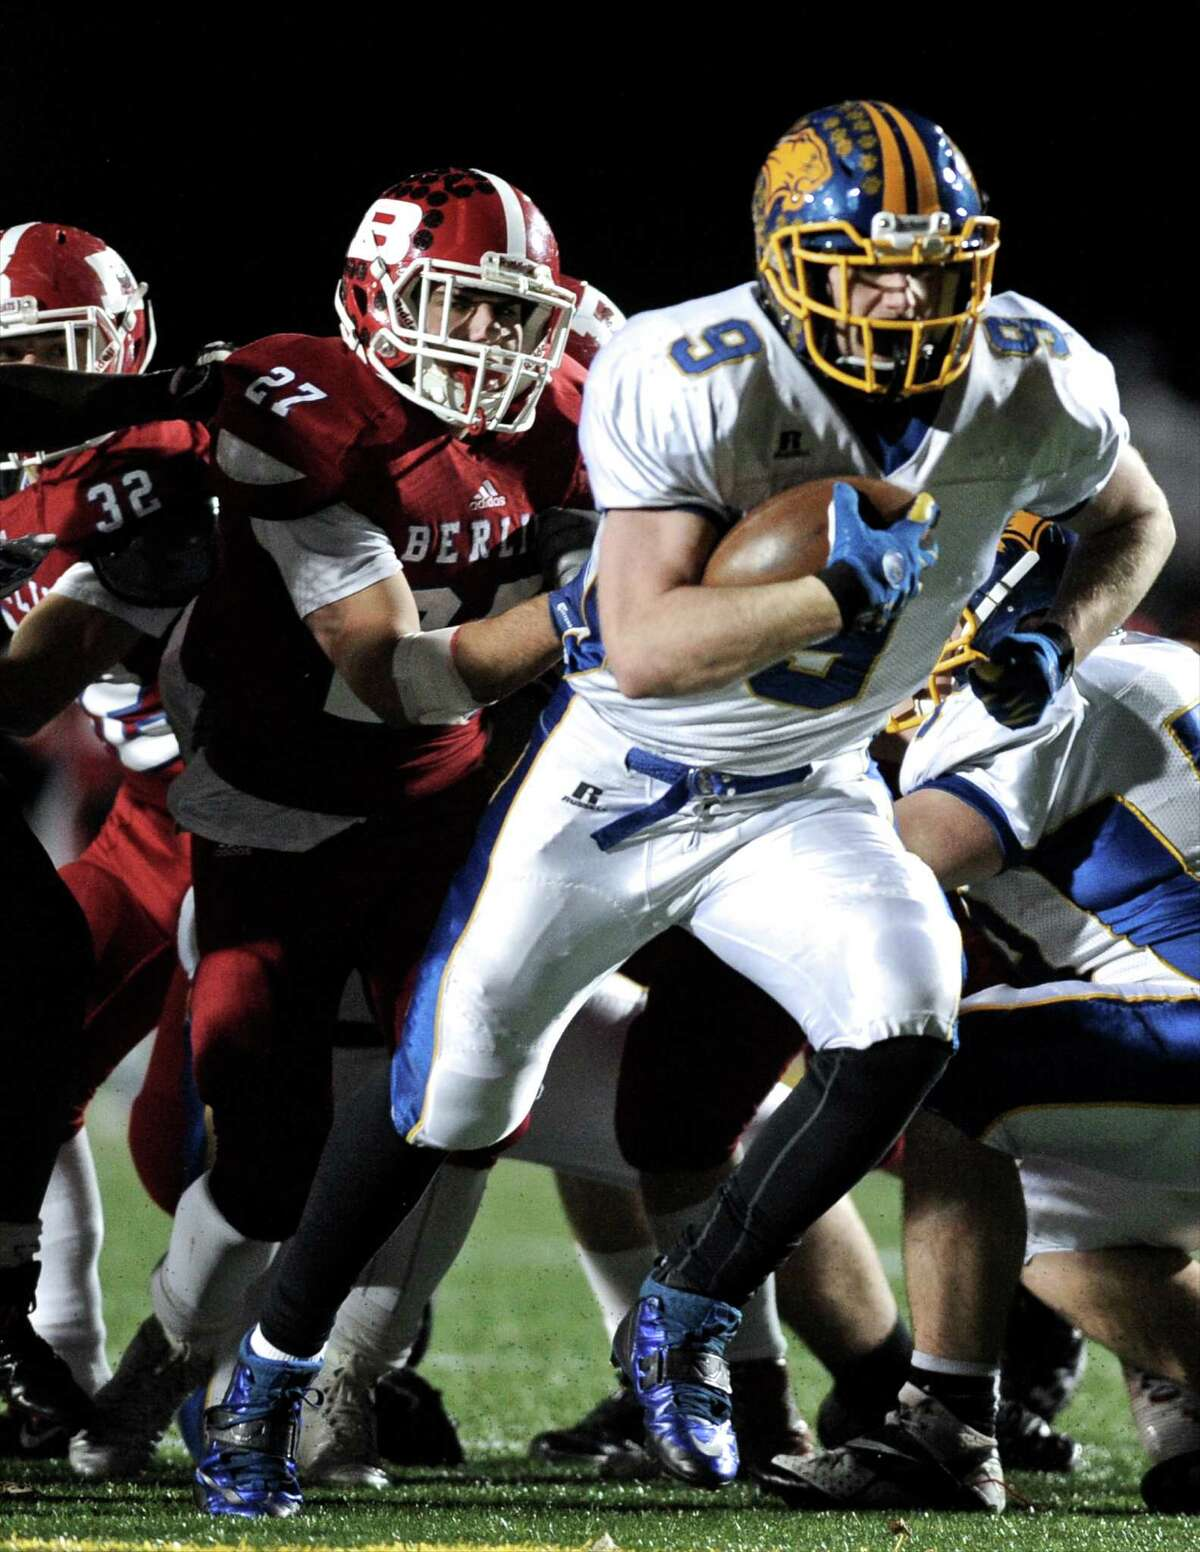 Brookfield's Bobby Drysdale (9) breaks away from Berlin's Anthony Sisti (27) to score a touchdown during the Connecticut state high school Class M-Large football championship game between Berlin and Brookfield high schools played at Veterans Memorial Stadium, in New Britain, Conn, on Friday night, December 12, 2014. Brookfield won the state championship 14-0.